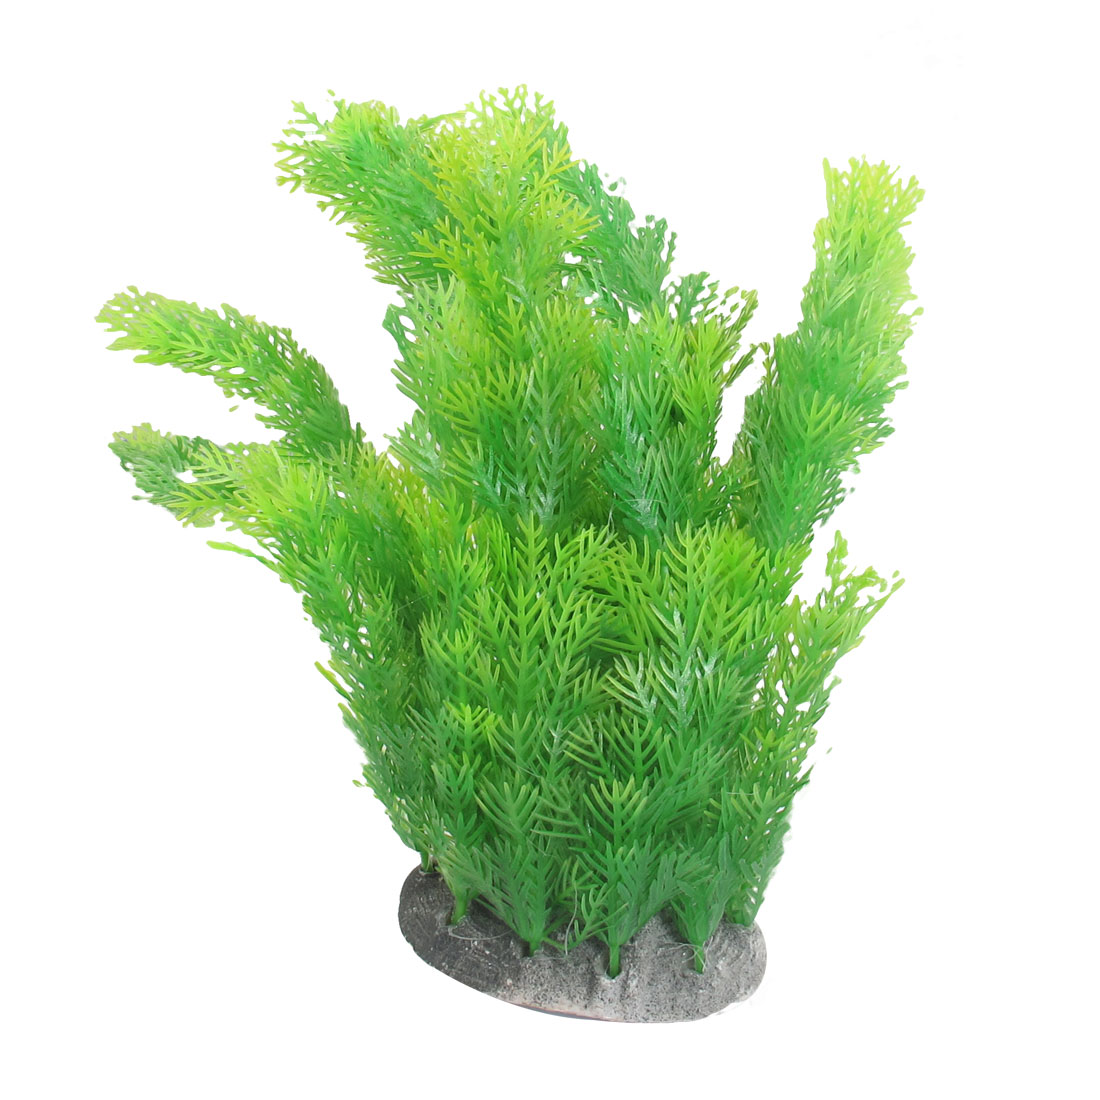 Green Thin Leaves Manmade Underwater Plants Decoration for Fish Tank